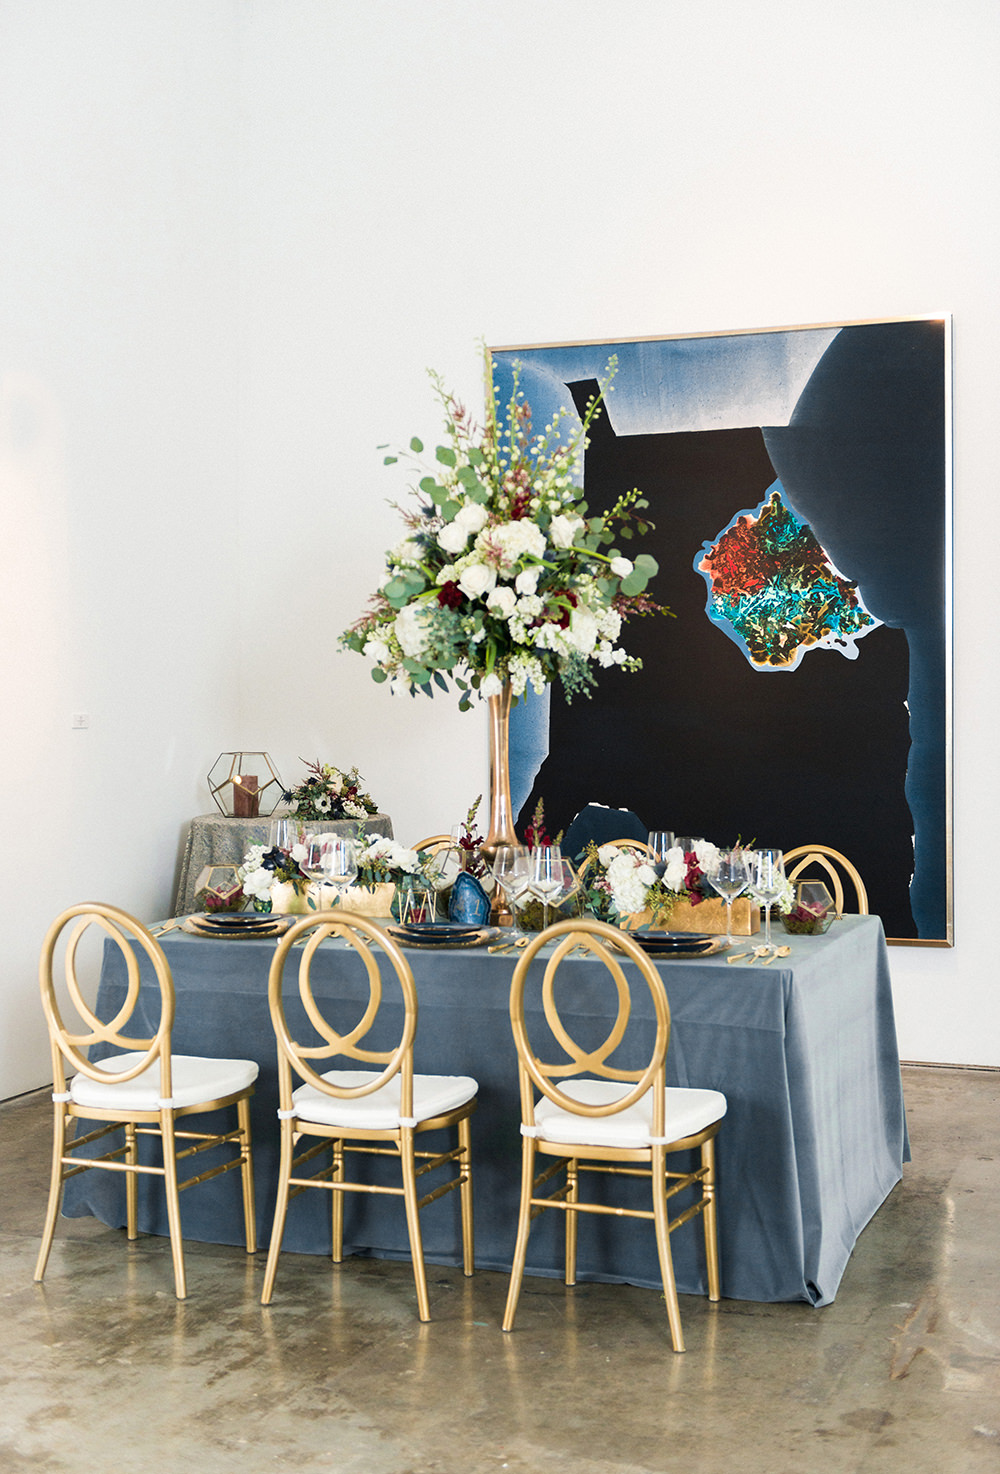 Art Gallery Inspired Wedding Shoot with Agate - https://ruffledblog.com/art-gallery-inspired-wedding-shoot-with-agate